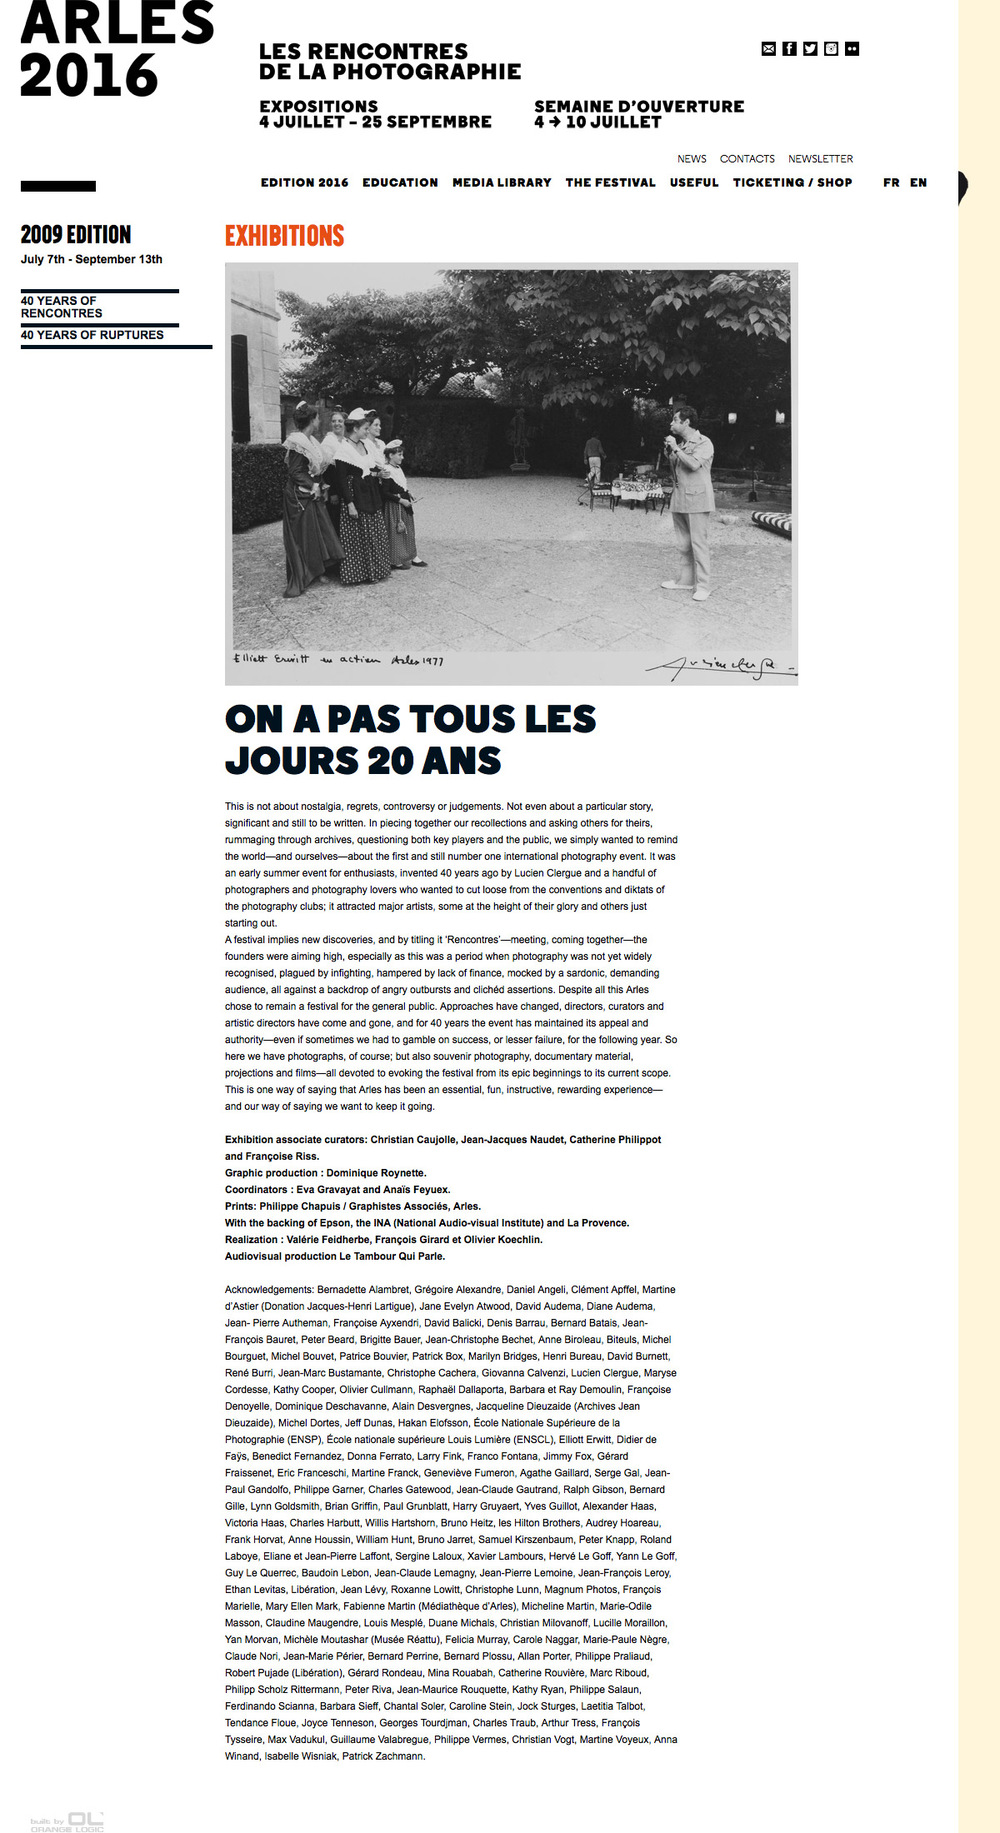 General---Exhibition---Arles-2009---40-Years-of-Ruptures---Mar-8-2010.jpg